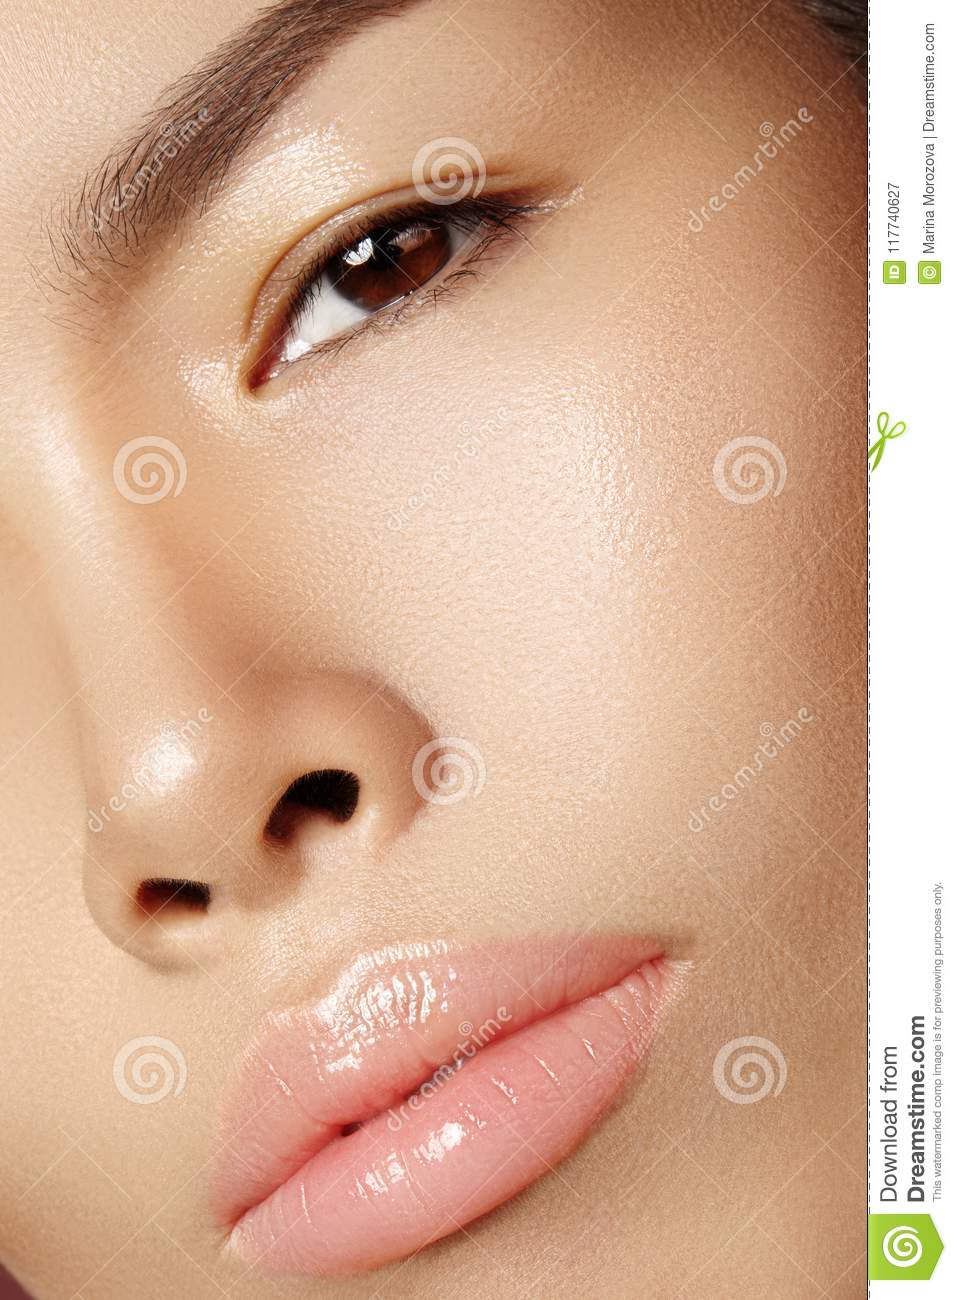 Beautiful asian woman with fresh daily makeup. Vietnamese beauty girl in spa treatment. Close-up with Clean Skin on Face